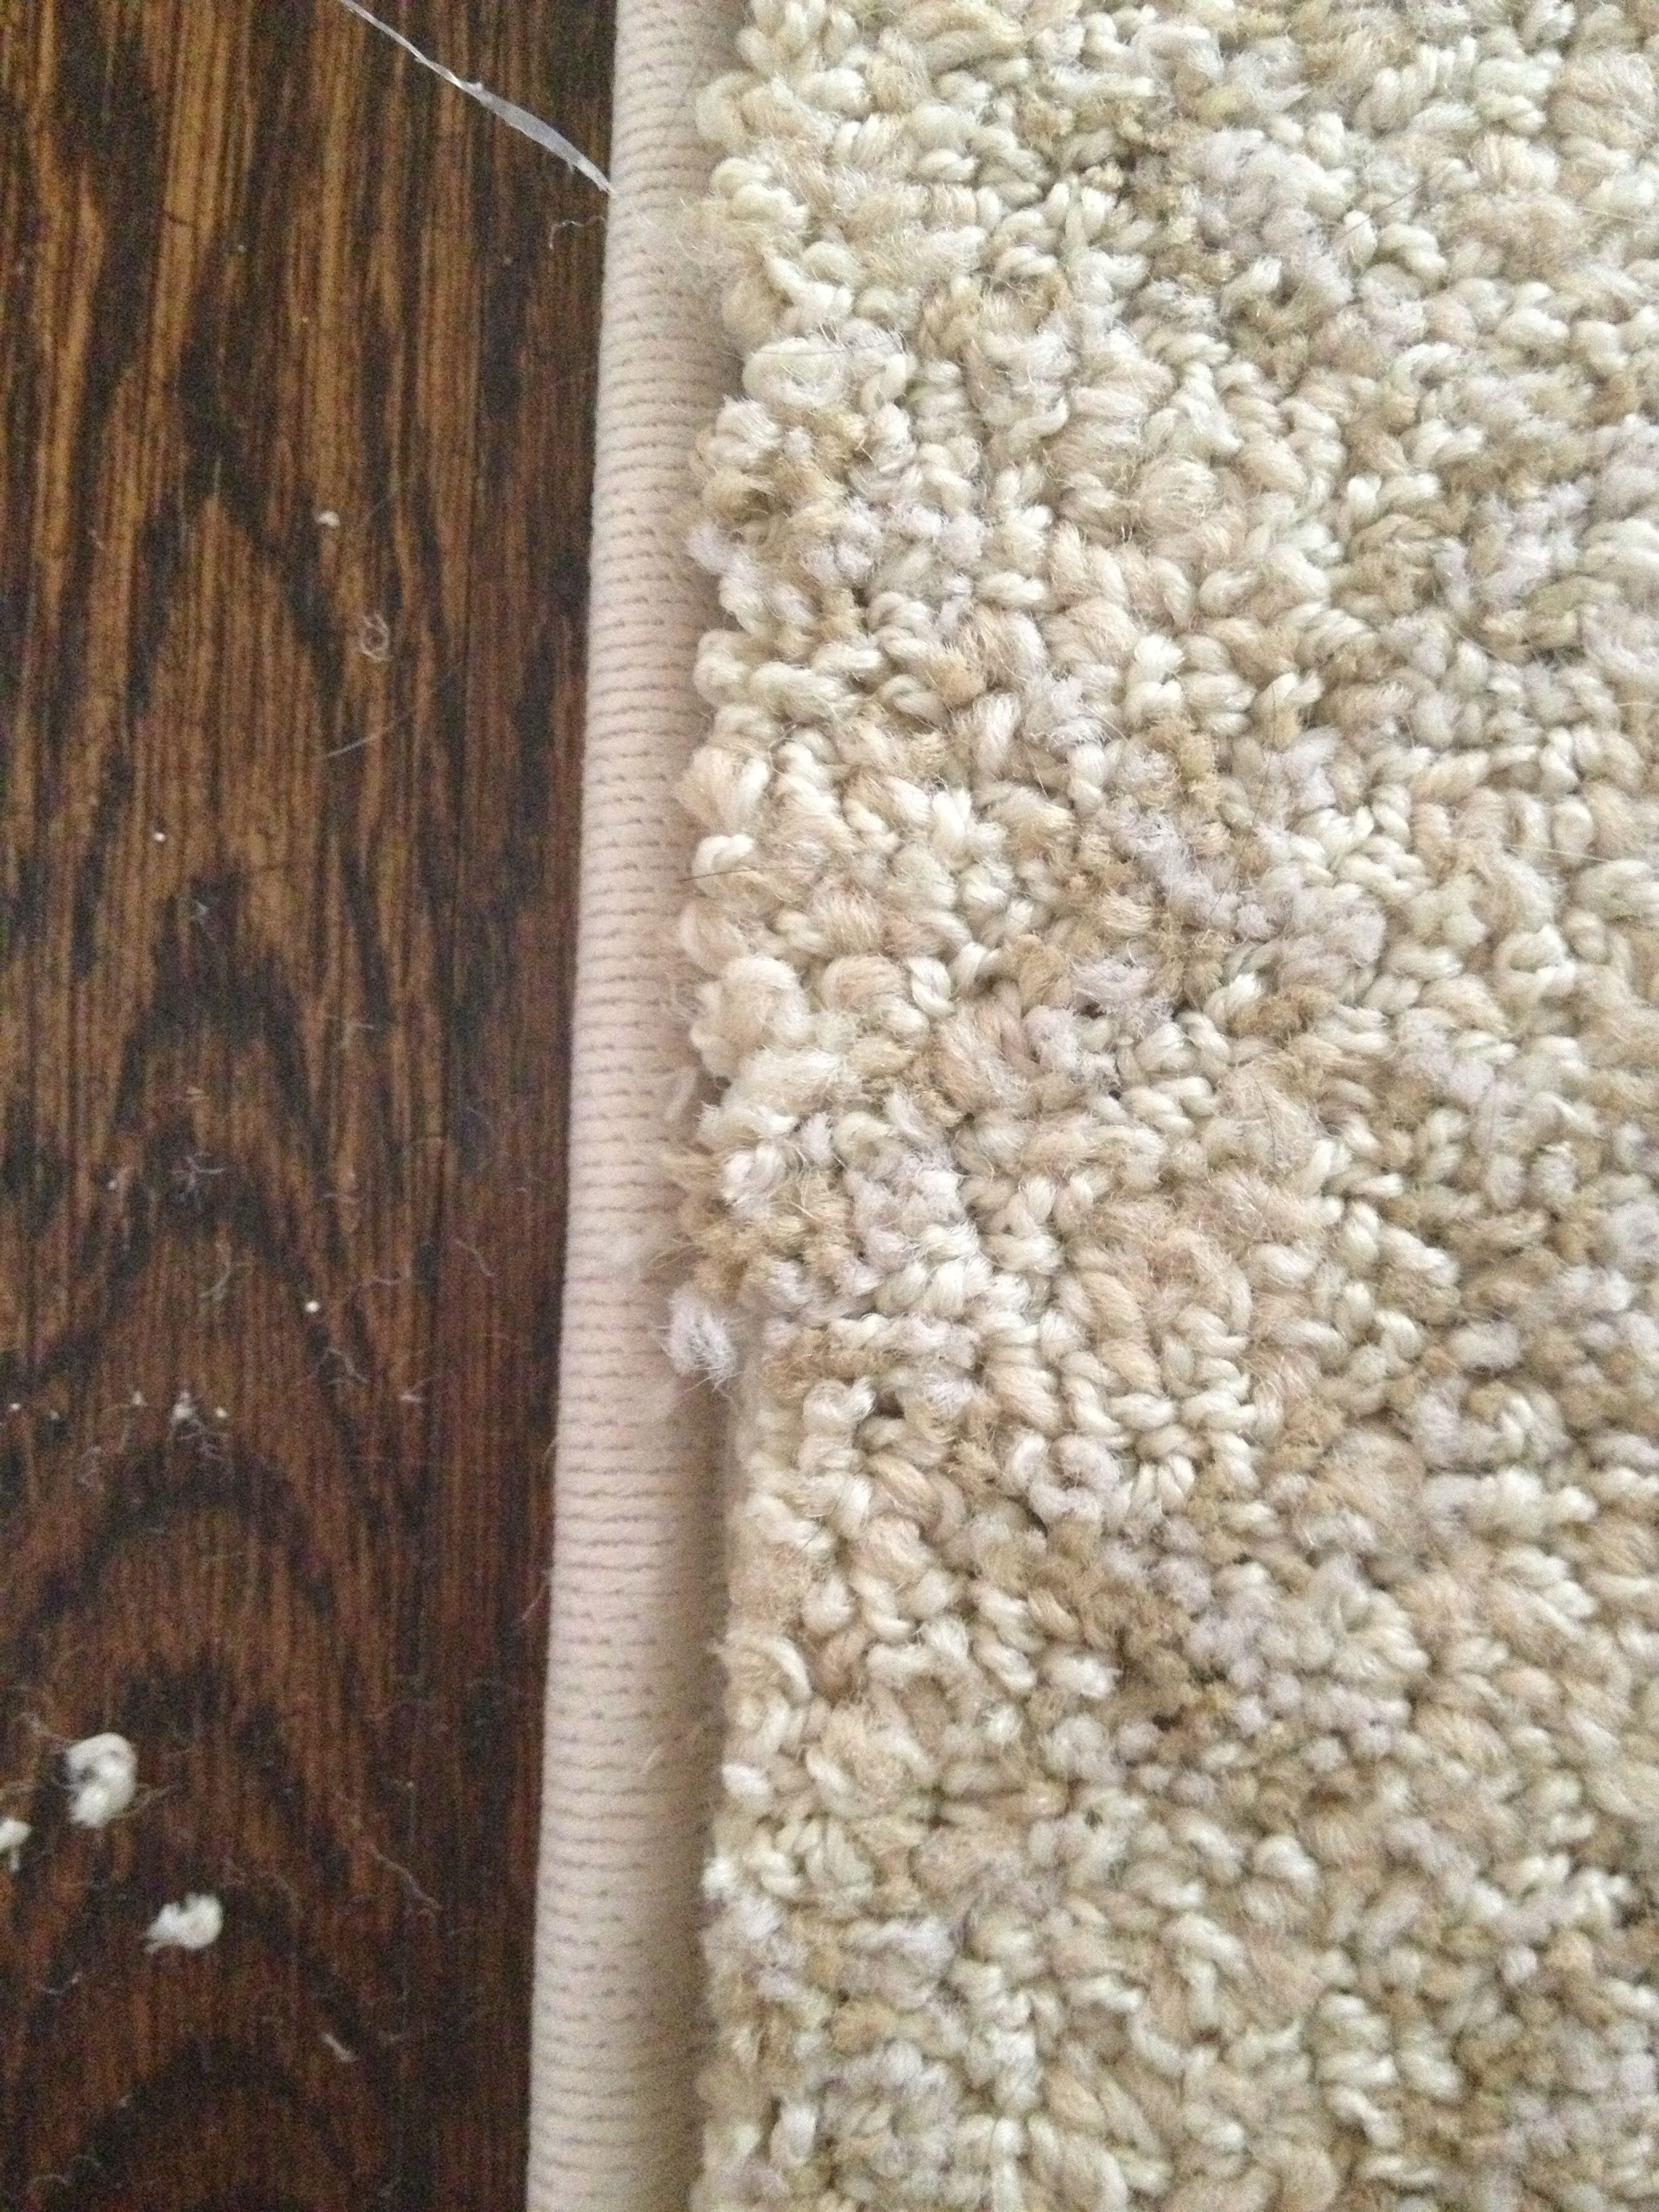 How To Turn A Carpet Remnant Into A Rug